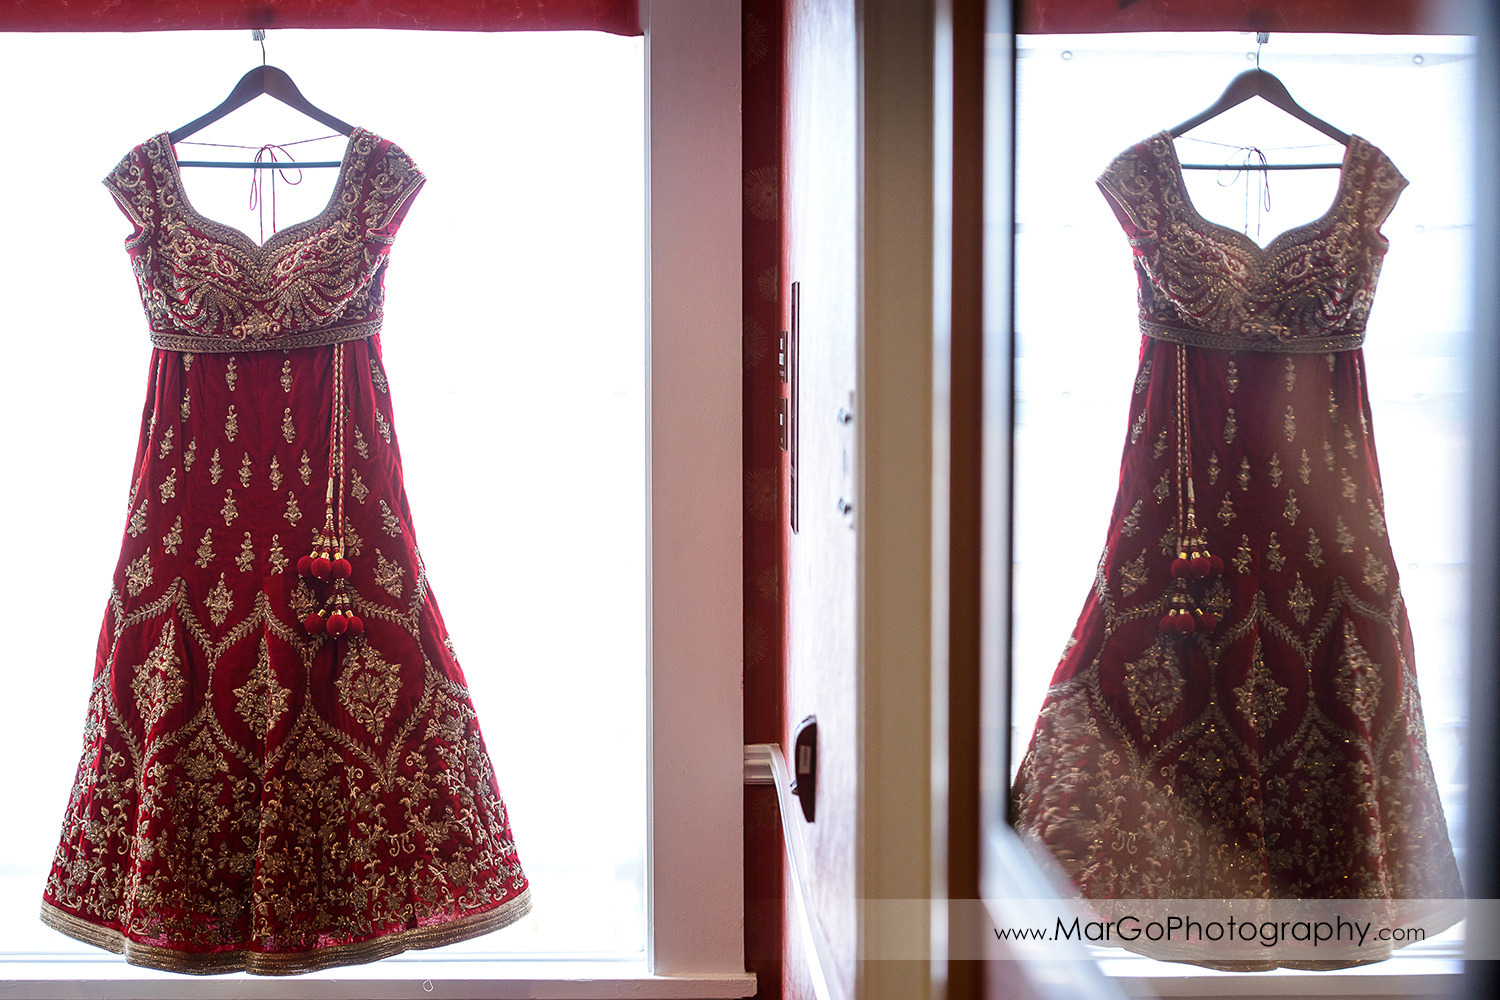 indian wedding dress at Hotel Shattuck Plaza in Berkeley